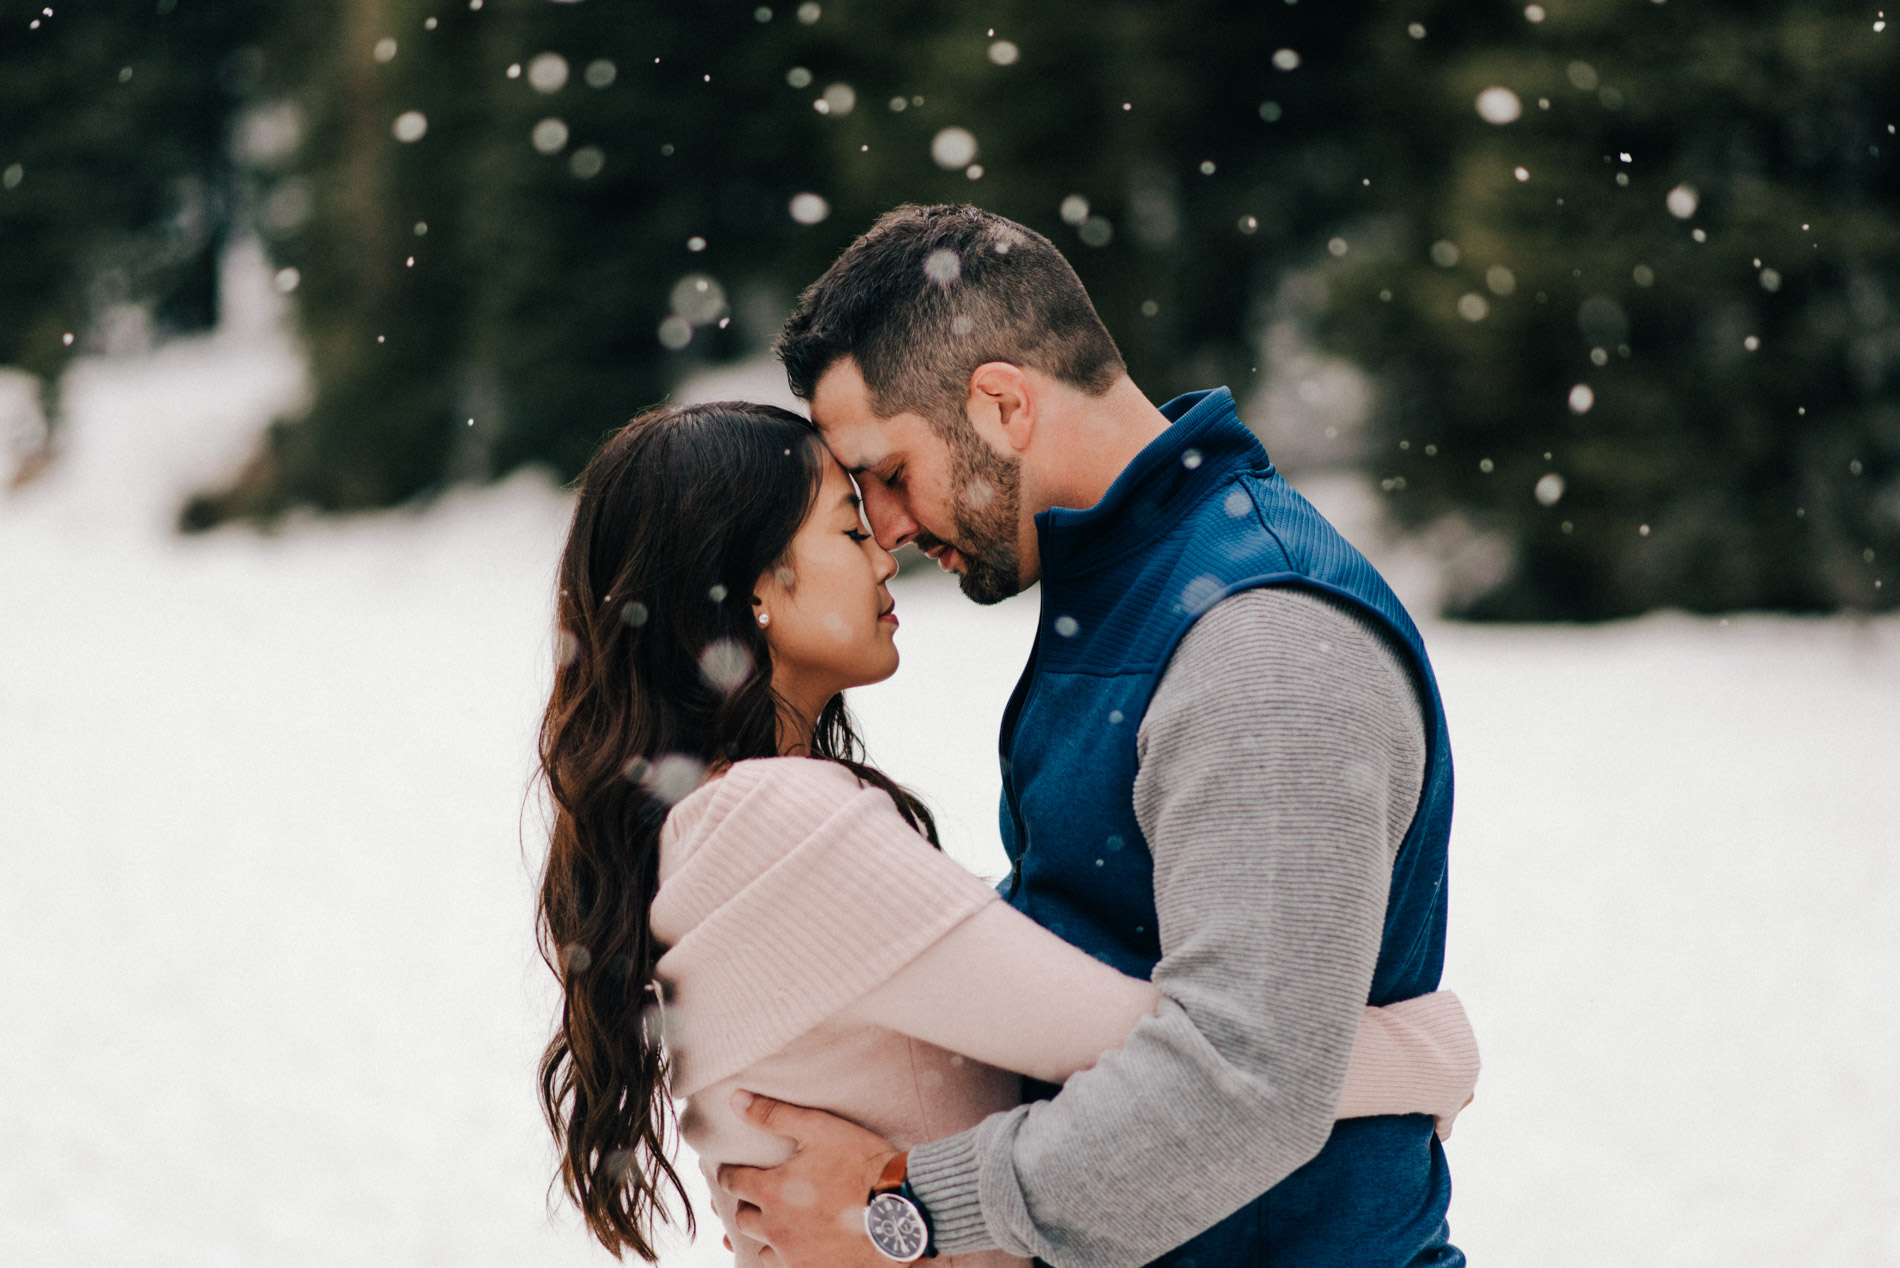 winter-park-engagement-session-berthod-pass-engagement-session-tabernash-wedding-photographer-fraser-adventure-session-Teresa-Woodhull-Intimate-Wedding-Photography-Teresa-Woodhull-Intimate-Wedding-Photographer-Teresa-Woodhull-Elopement-Photography-Teresa-Woodhull-Elopement-Photographer-Elopement-Photography-Intimate-Elopement-Photographer-Intimate-Elopement-Photography-Elopement-Wedding